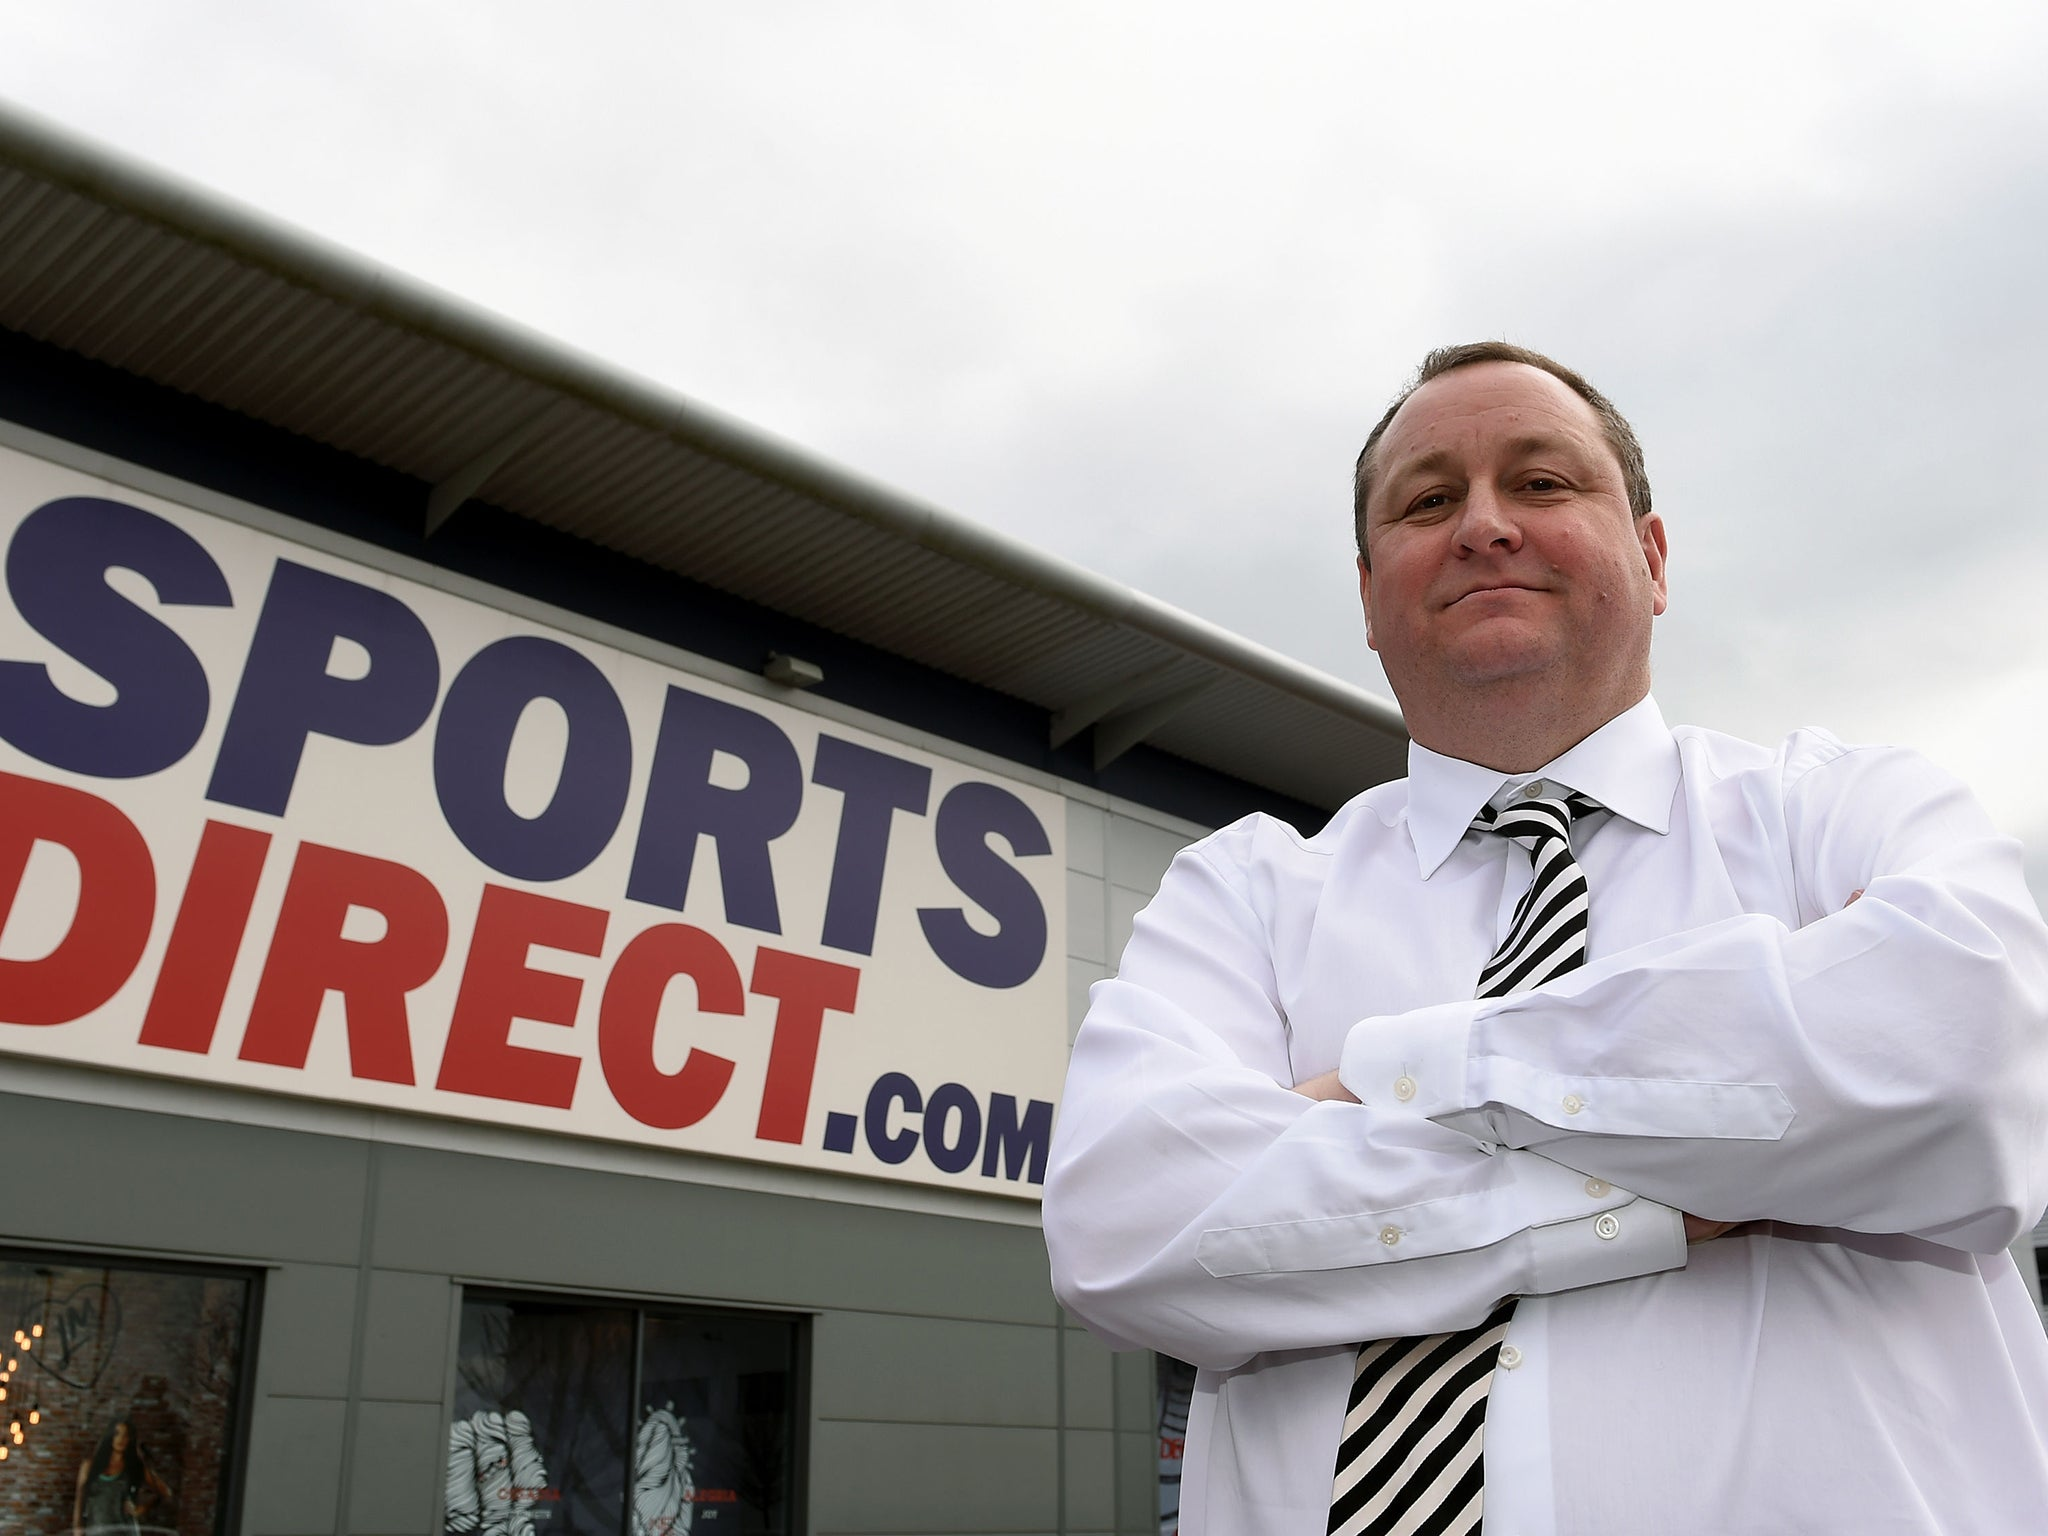 'Disgraceful' Sports Direct accused of 'secretly recording' MPs